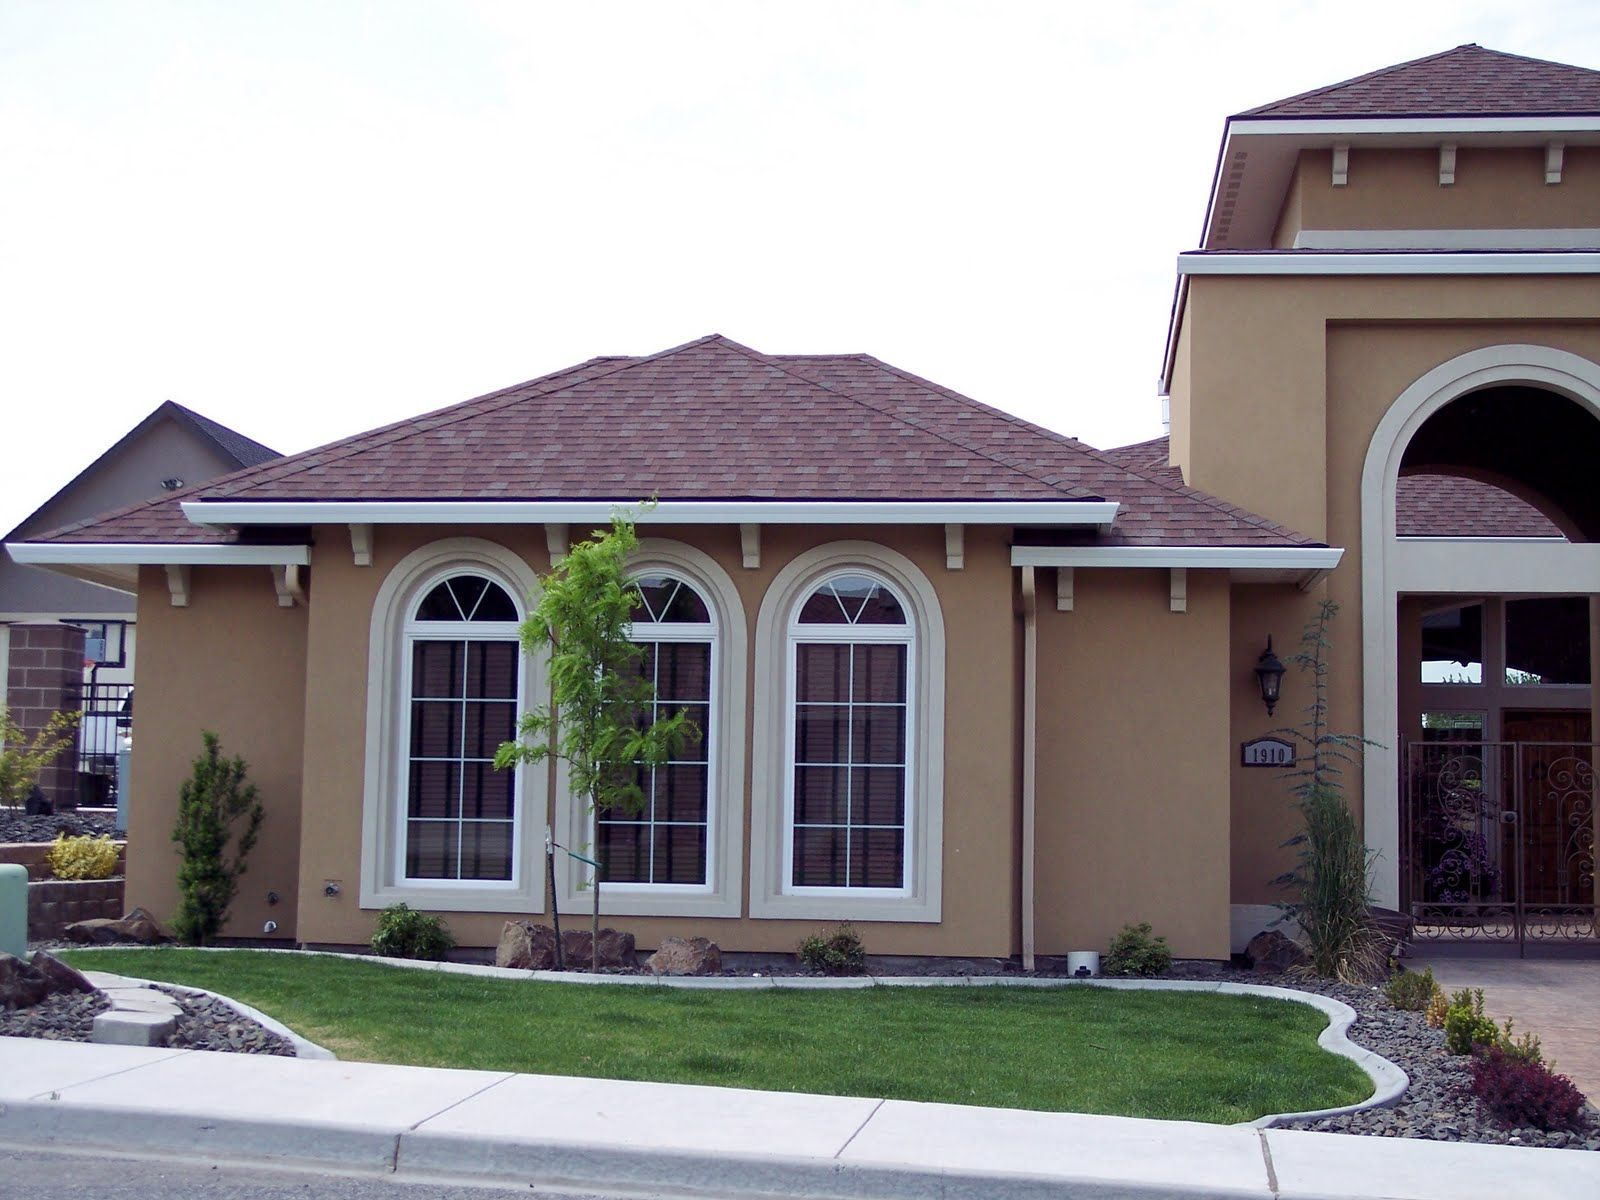 Exterior stucco house paint ideas - Exterior House Paints